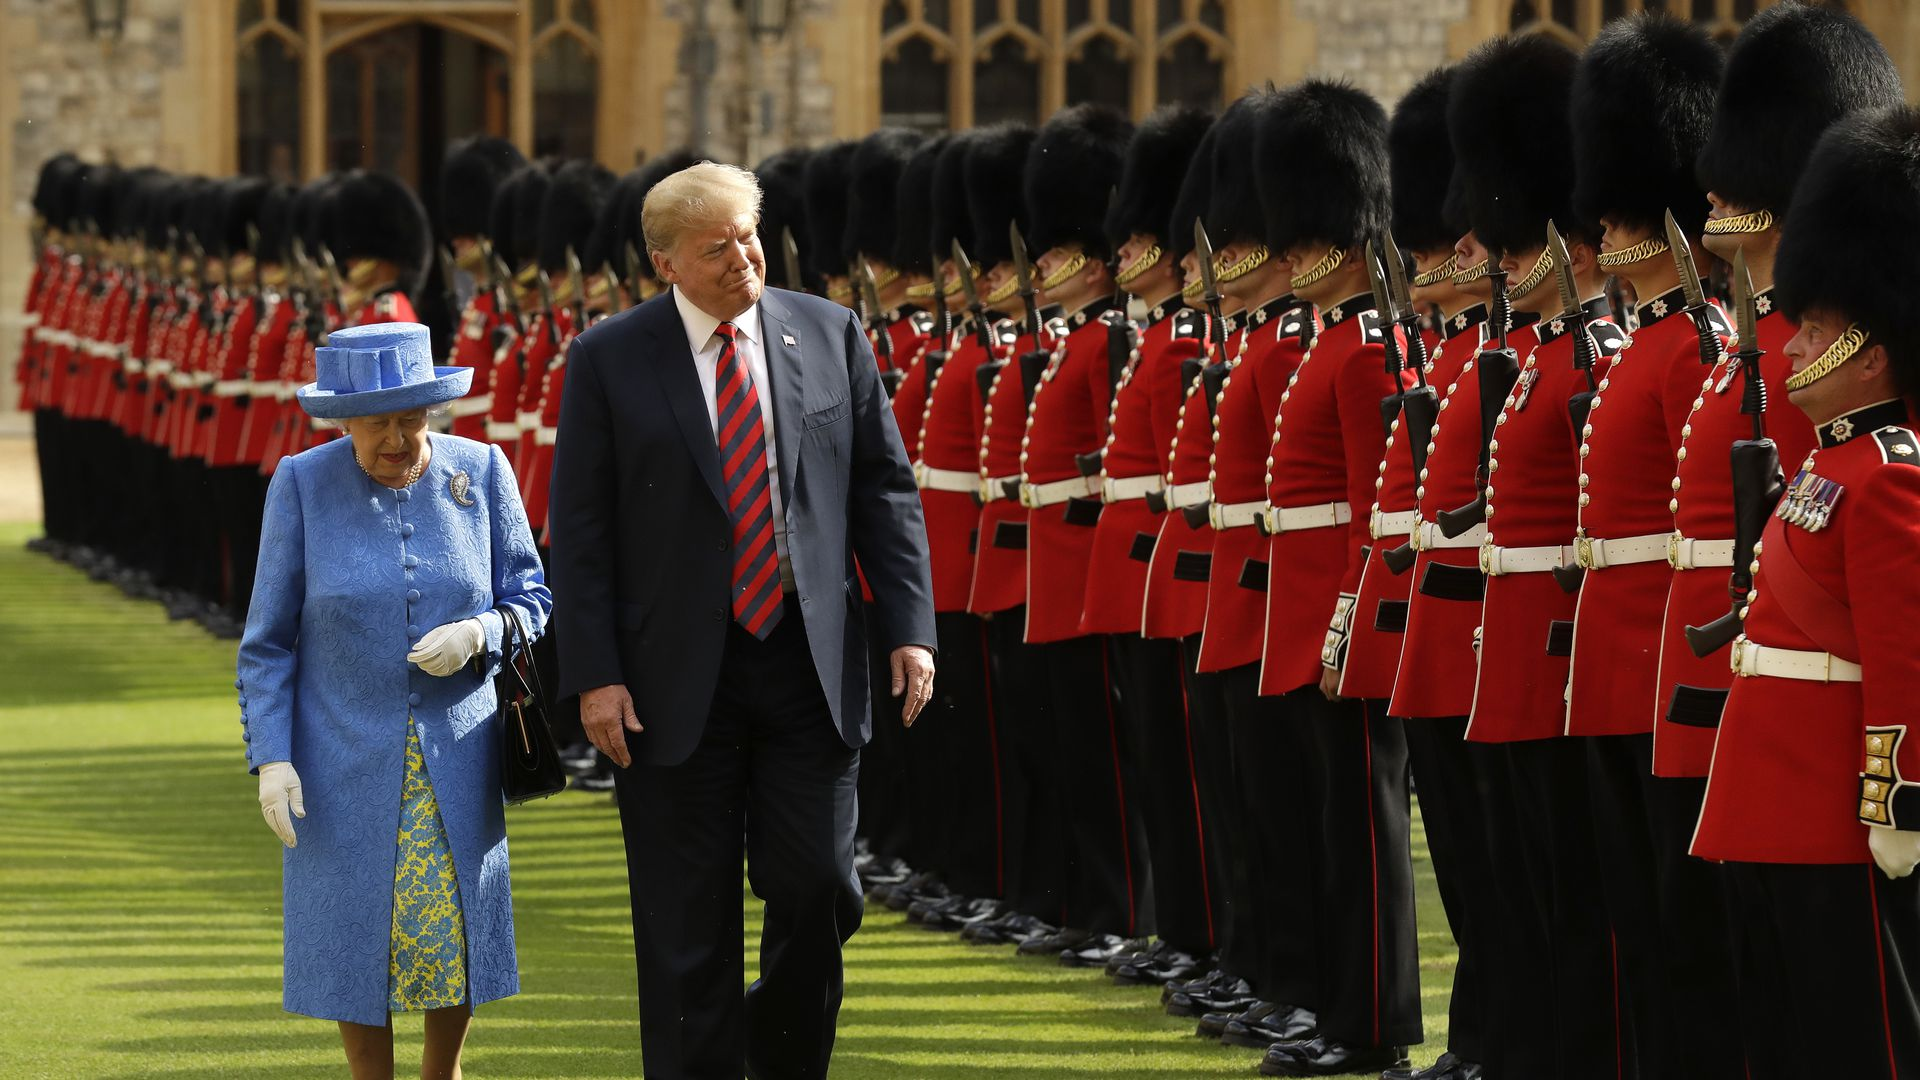 United States, US President, Donald Trump, Queen Elizabeth II, Windsor Castle, US National Anthem, UK, US, London, protests, anti-Trump protests,